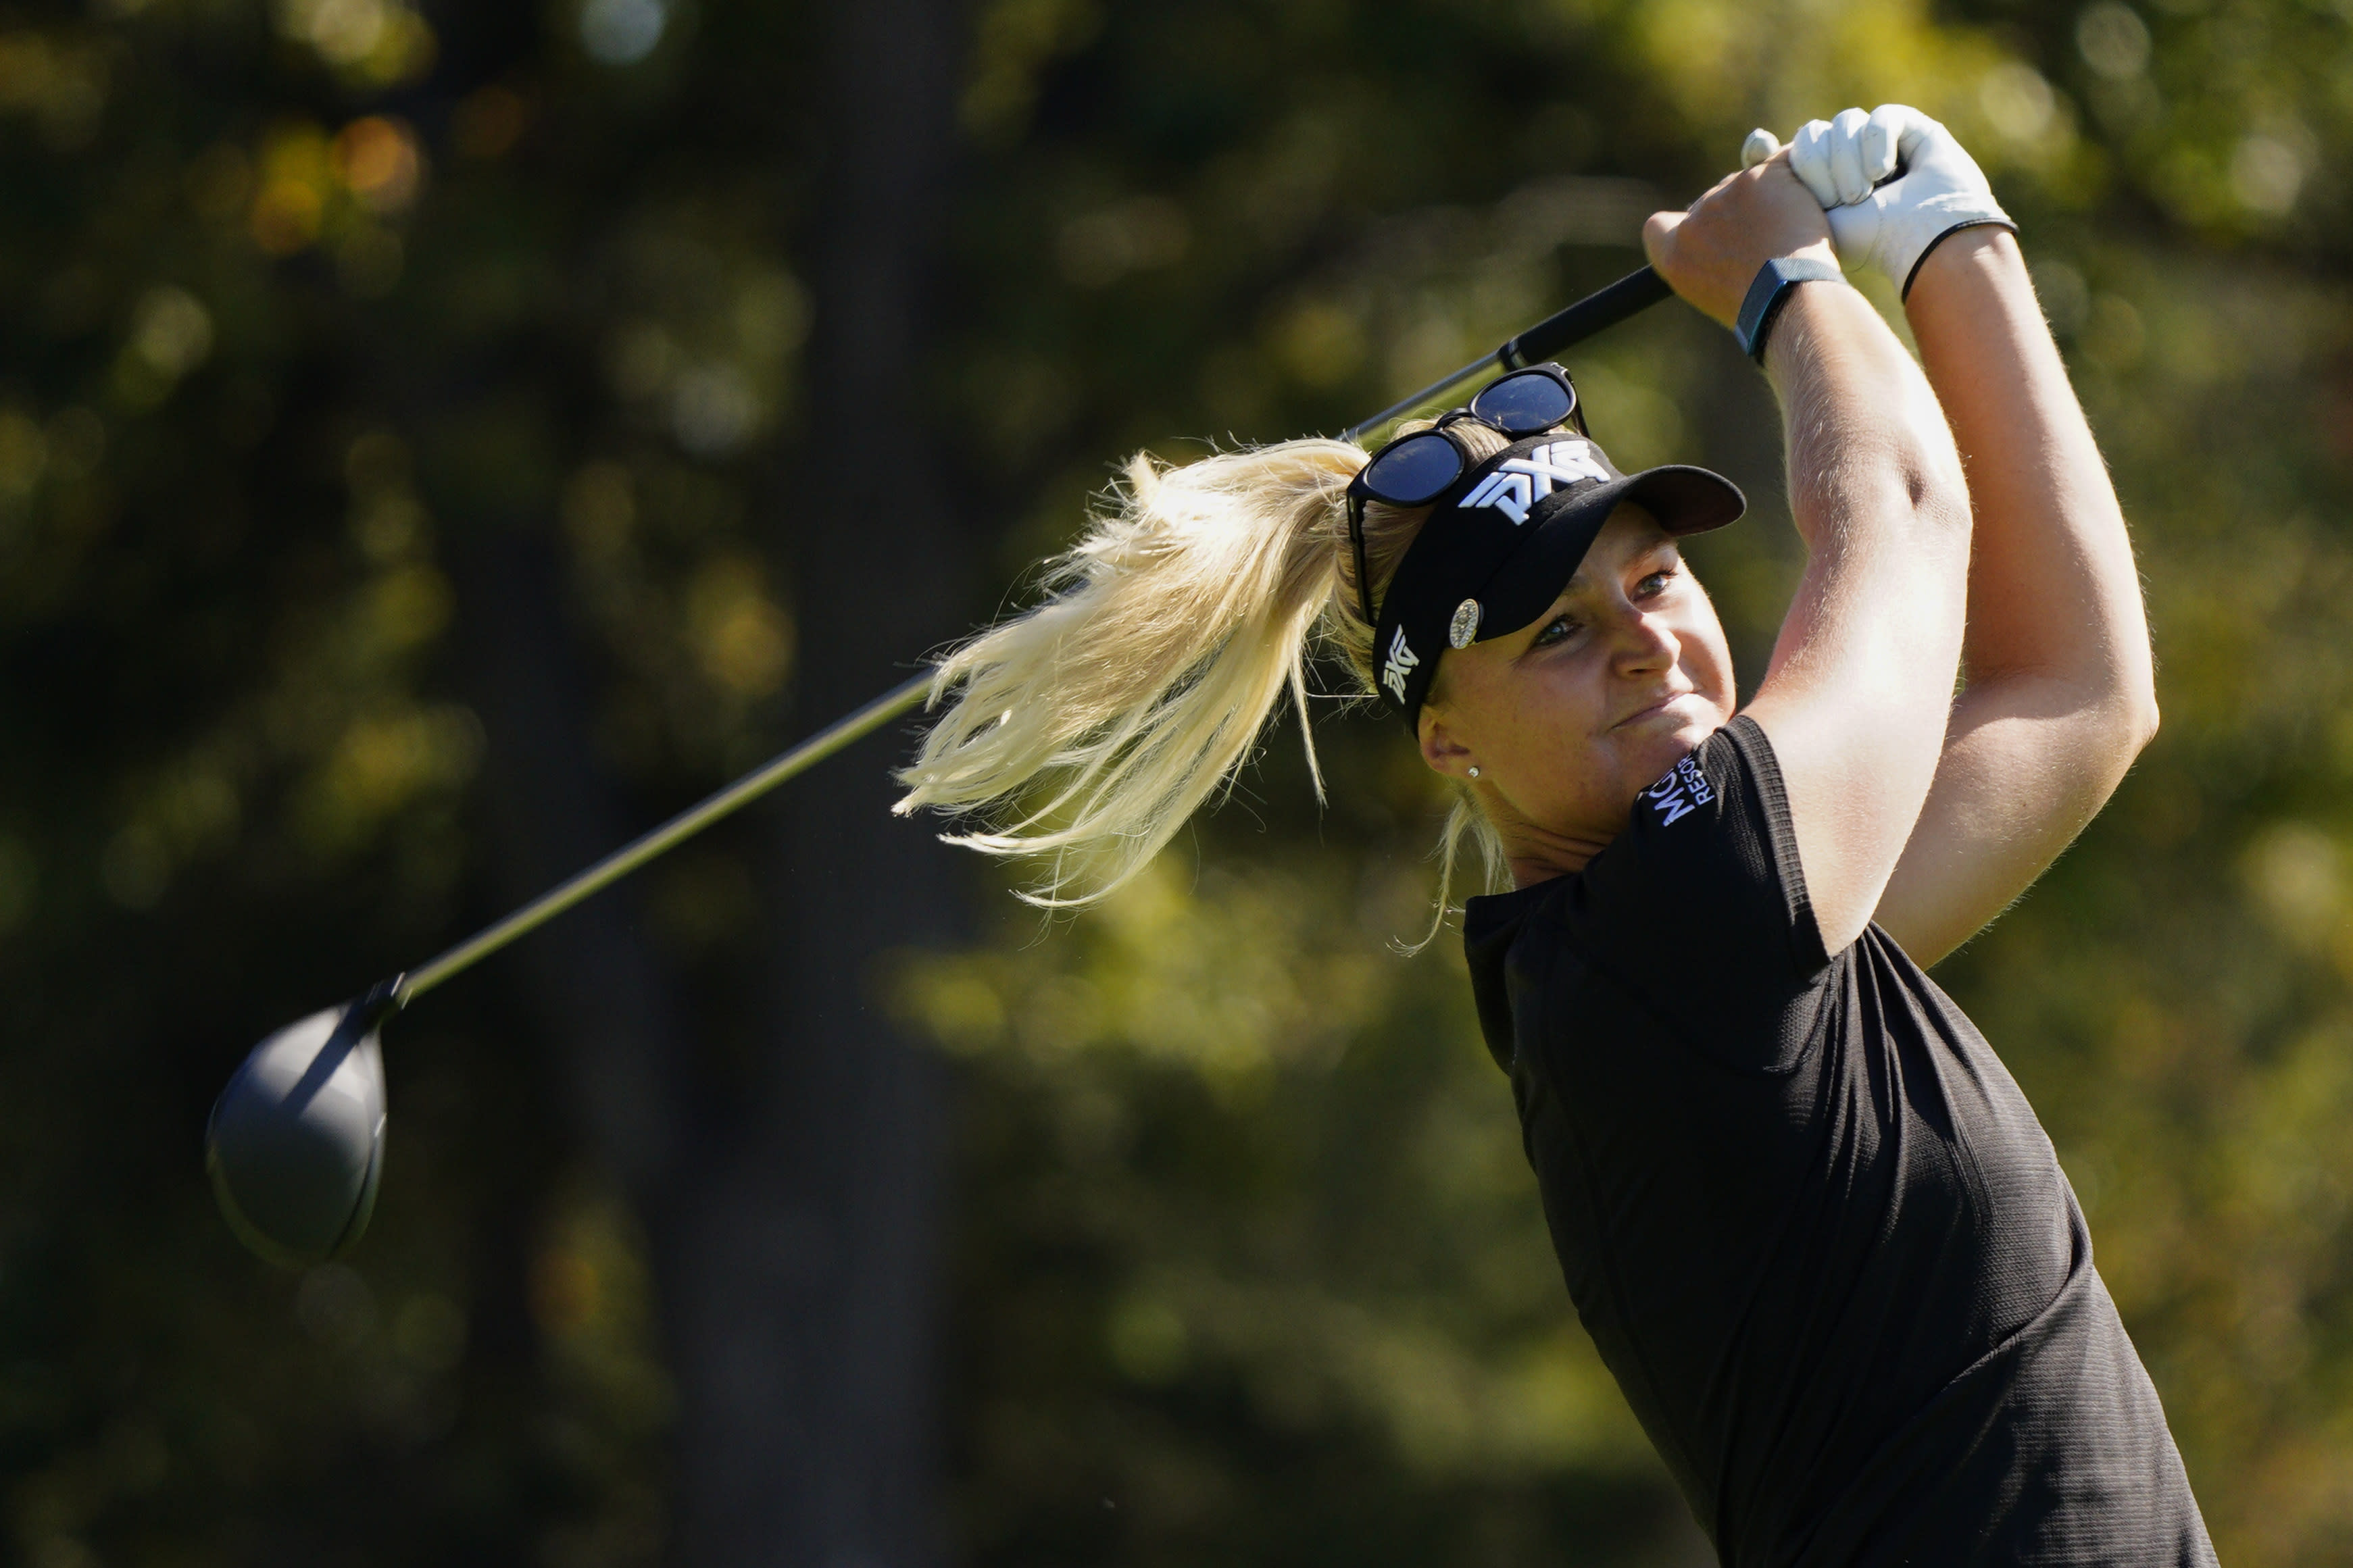 Anna Nordqvist, of Sweden, watches her tee shot on the second hole during the second round of the KPMG Women's PGA Championship golf tournament at the Aronimink Golf Club, Friday, Oct. 9, 2020, in Newtown Square, Pa. (AP Photo/Chris Szagola)